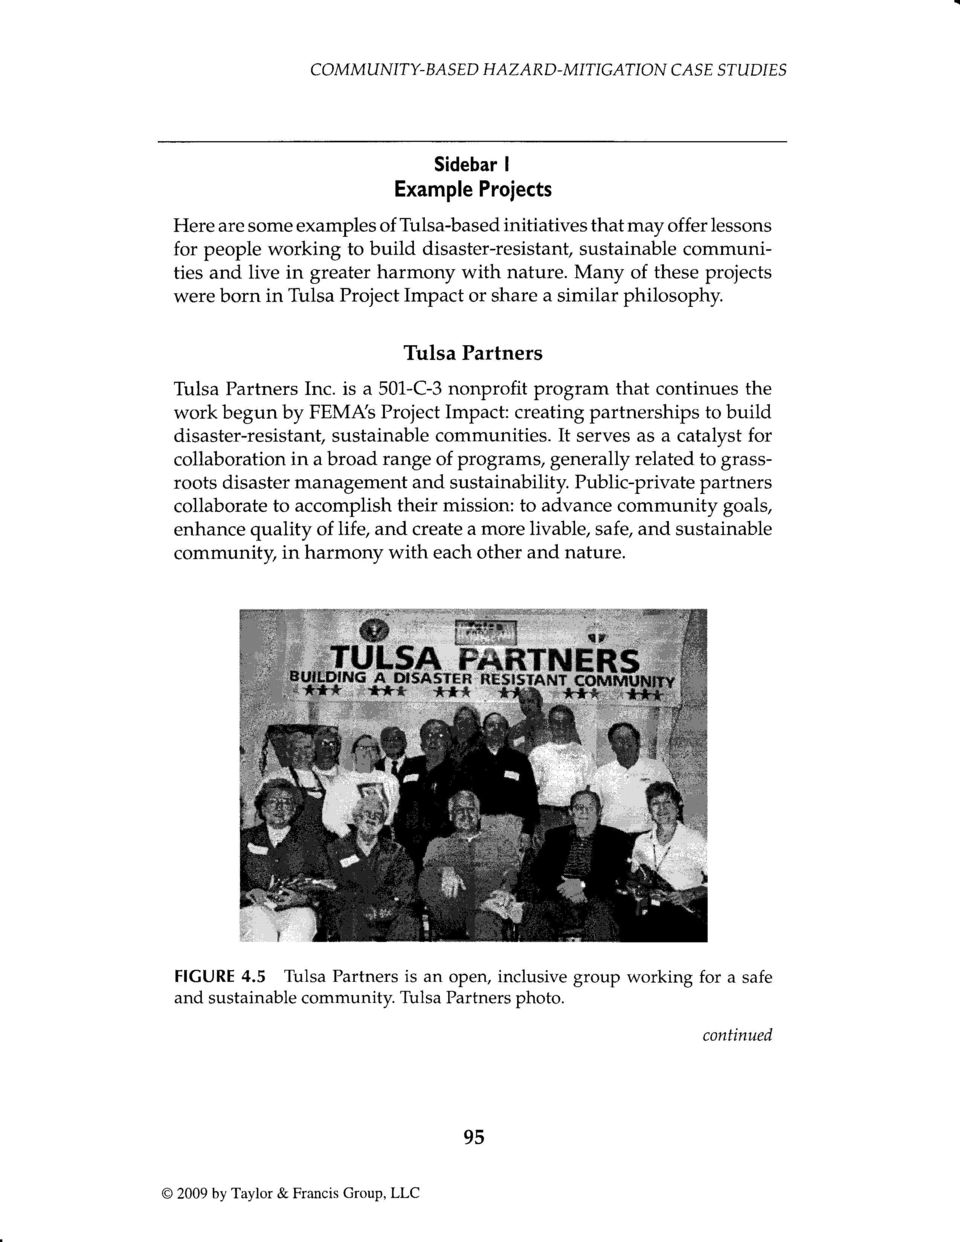 Tulsa Partners Tulsa Partners Inc. is a 501C3 nonprofit program that continues the work begun by FEMAs Project Impact: creating partnerships to build disasterresistant, sustainable communities.